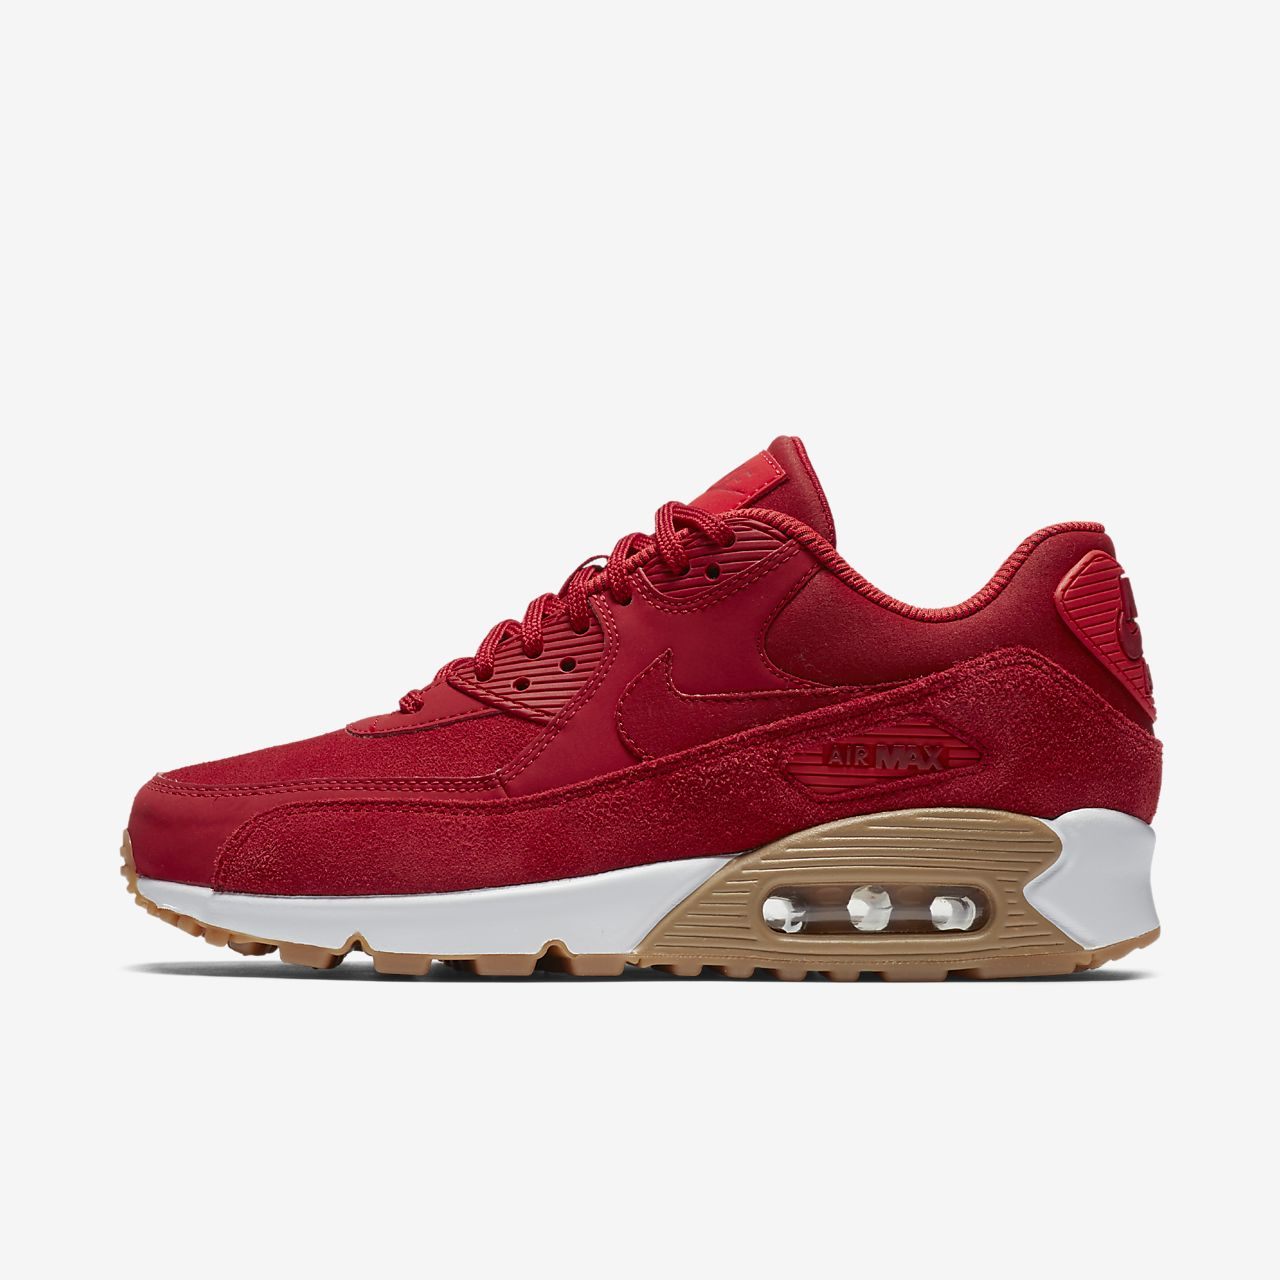 nike air max 90 red suede trainers with gum sole converse